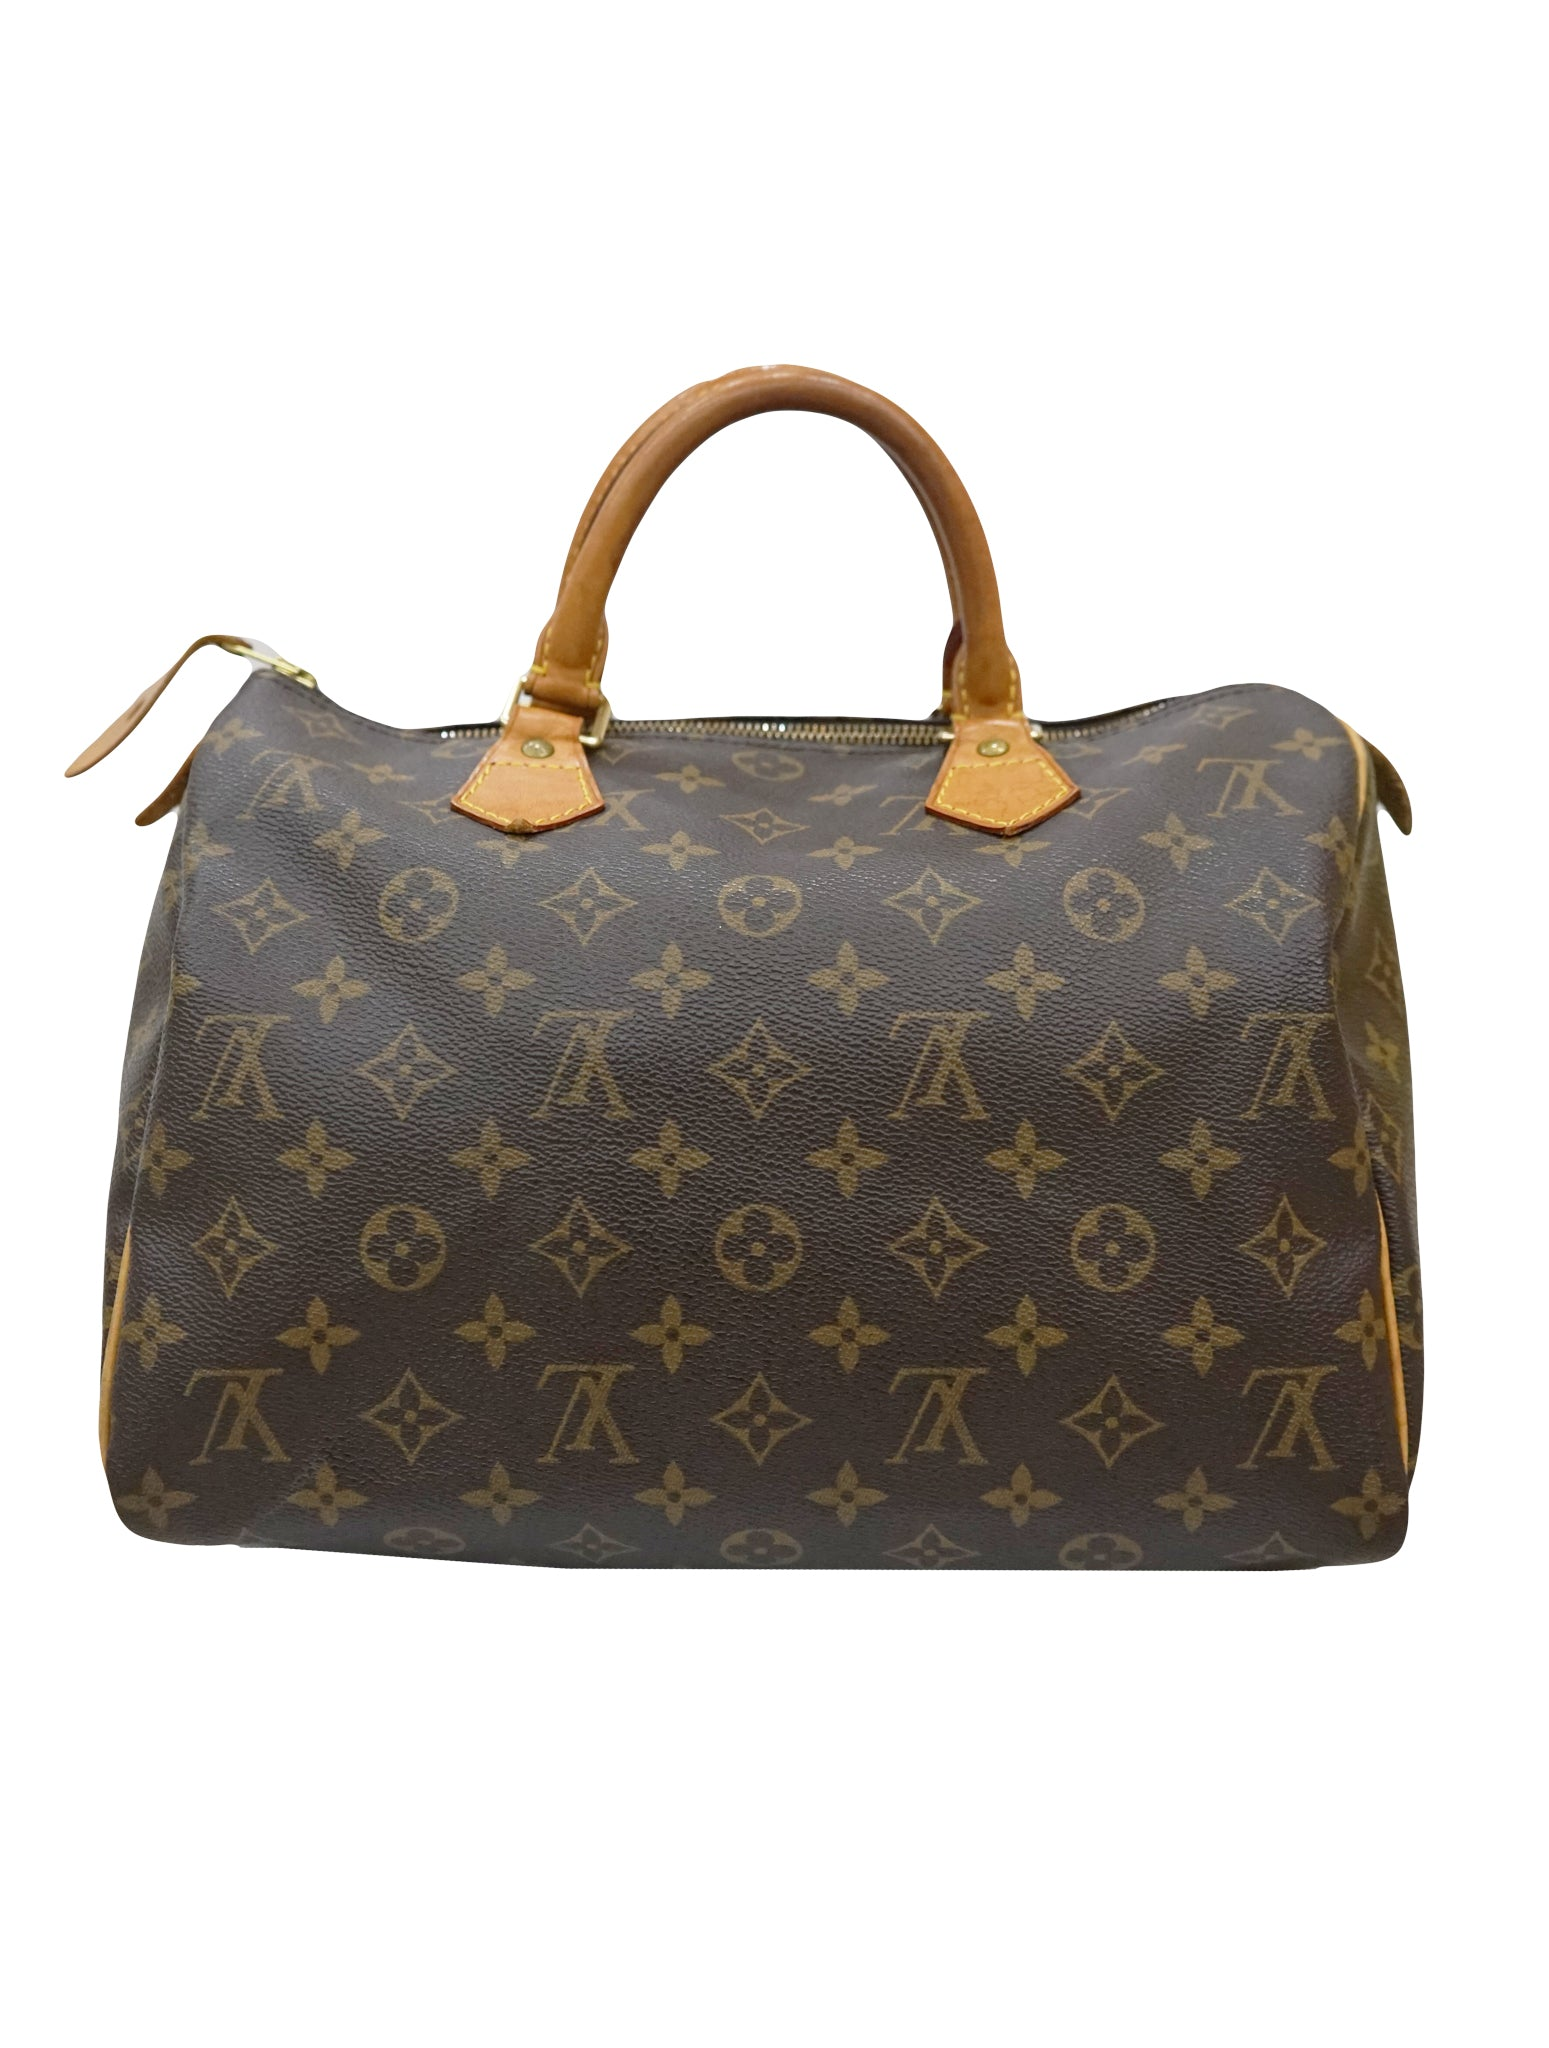 MONOGRAM CANVAS SPEEDY 30 BAG